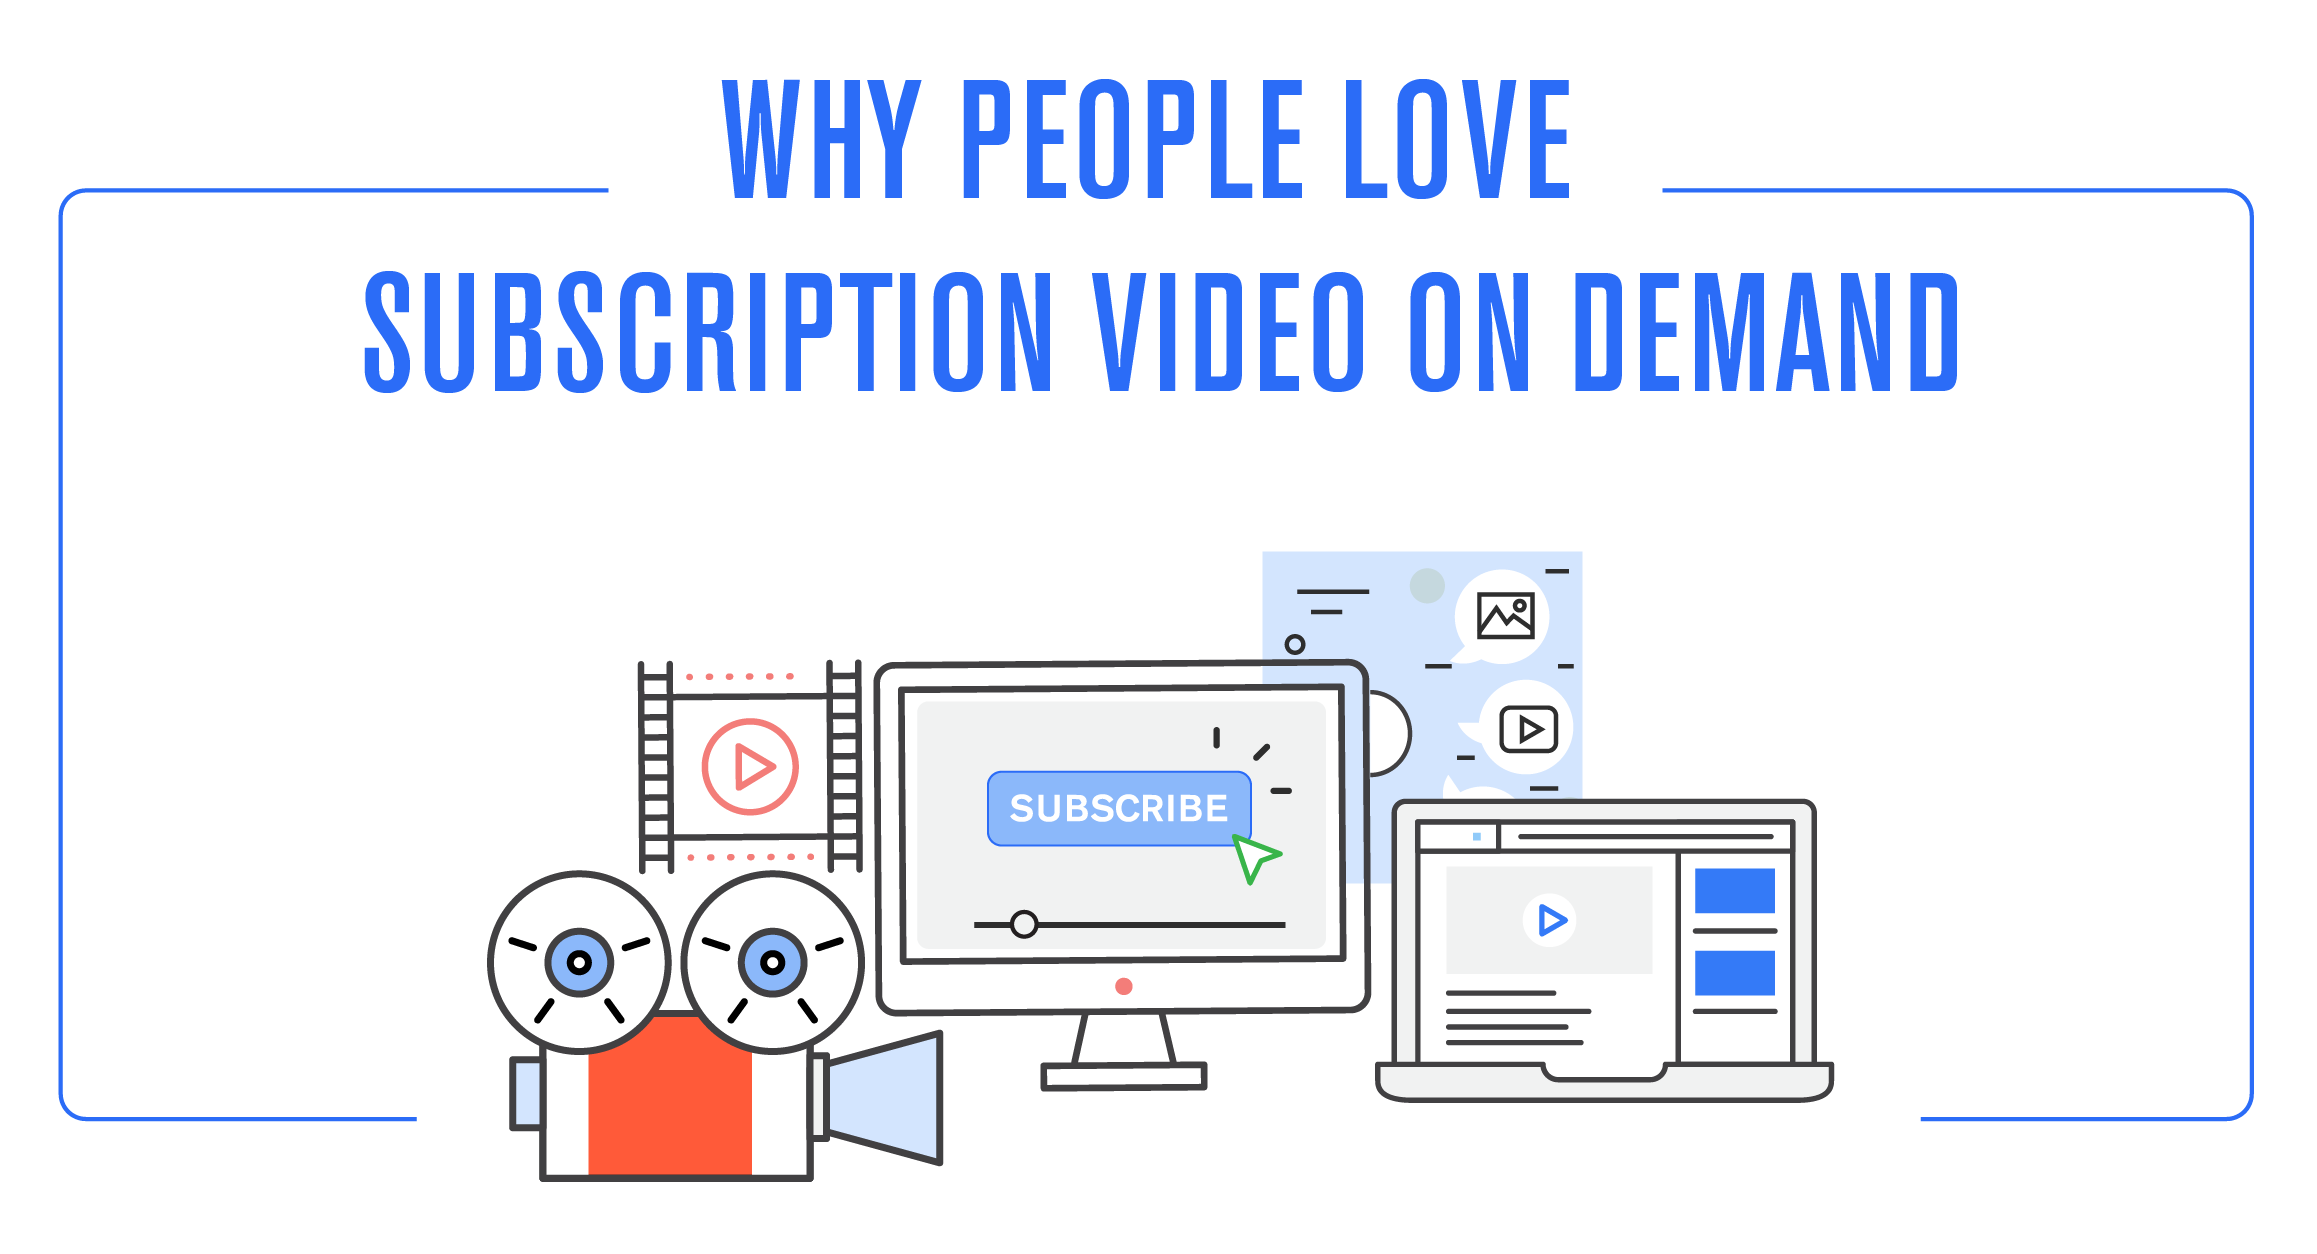 Why people love subscription video on demand